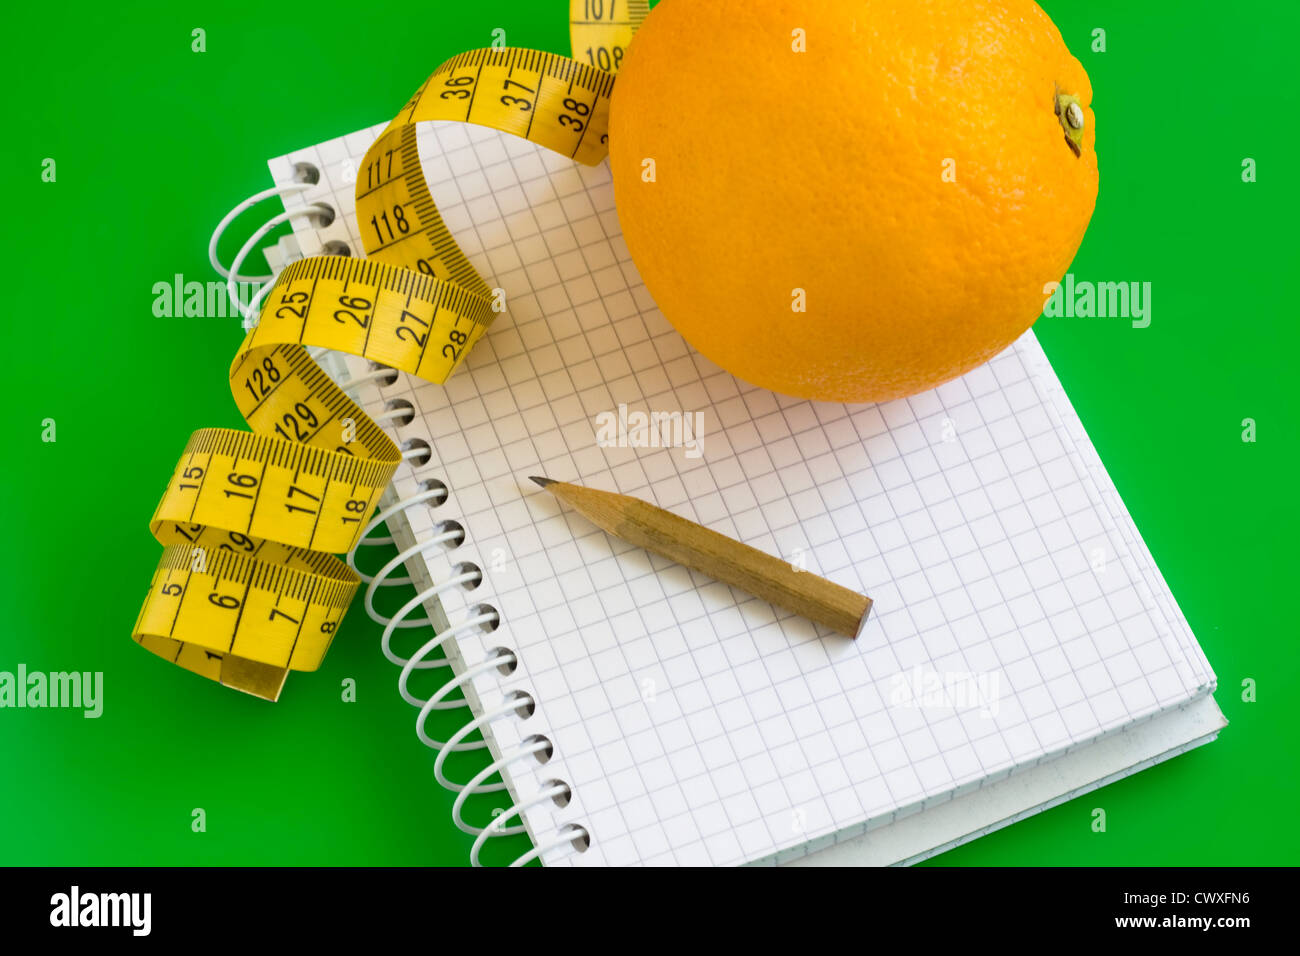 Writing in a diet and nutrition journal with orange to the side - Stock Image